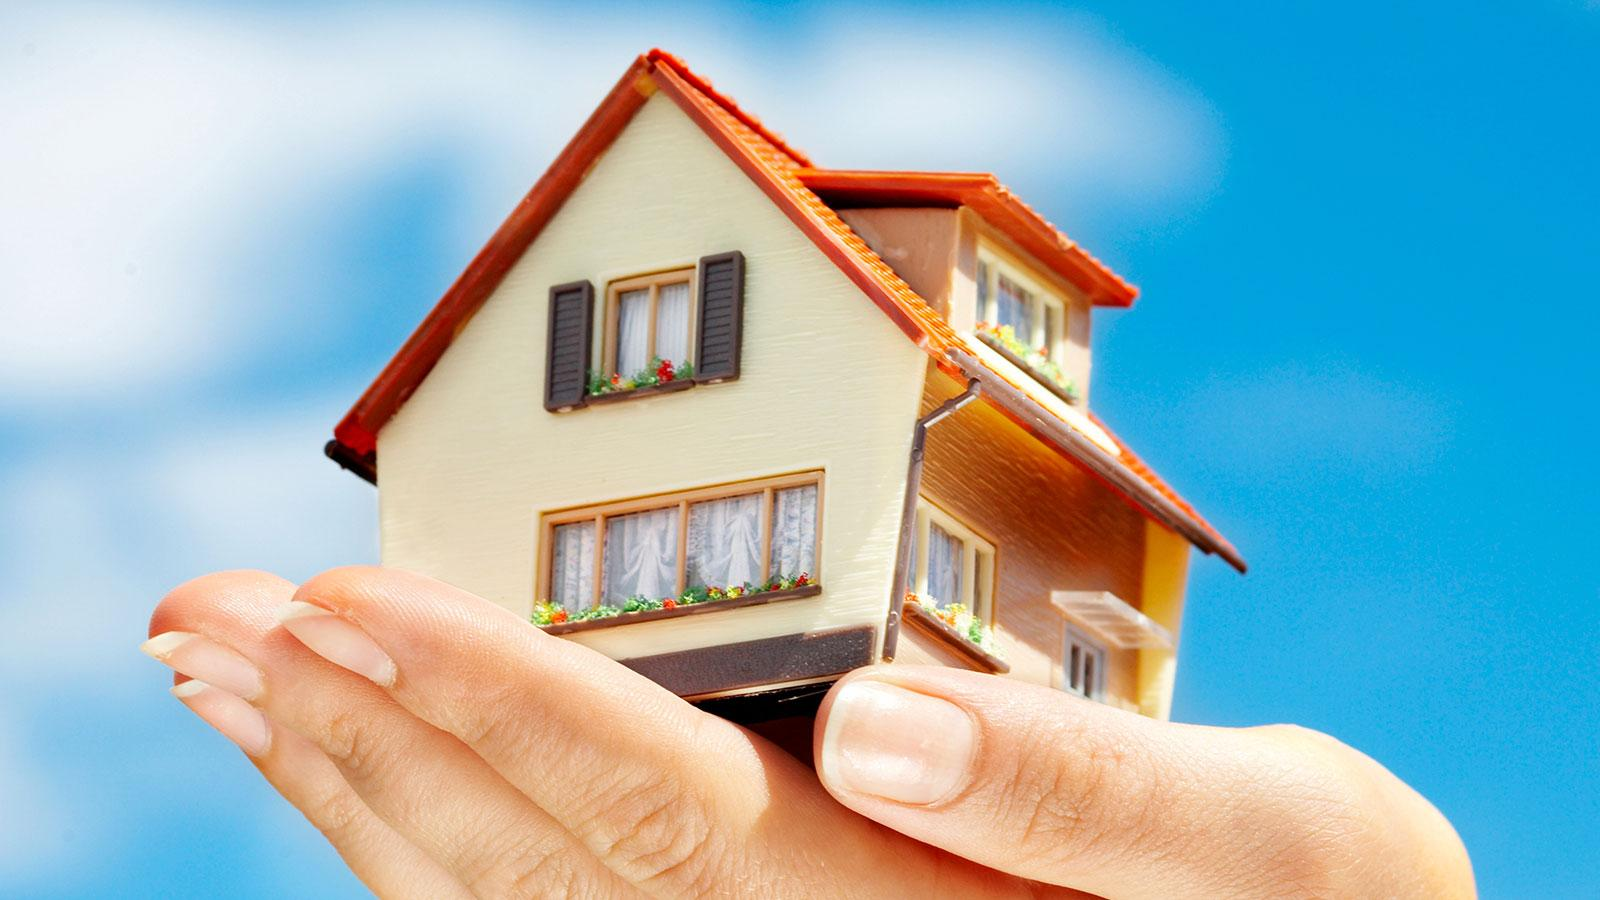 About Home Land Real Estate